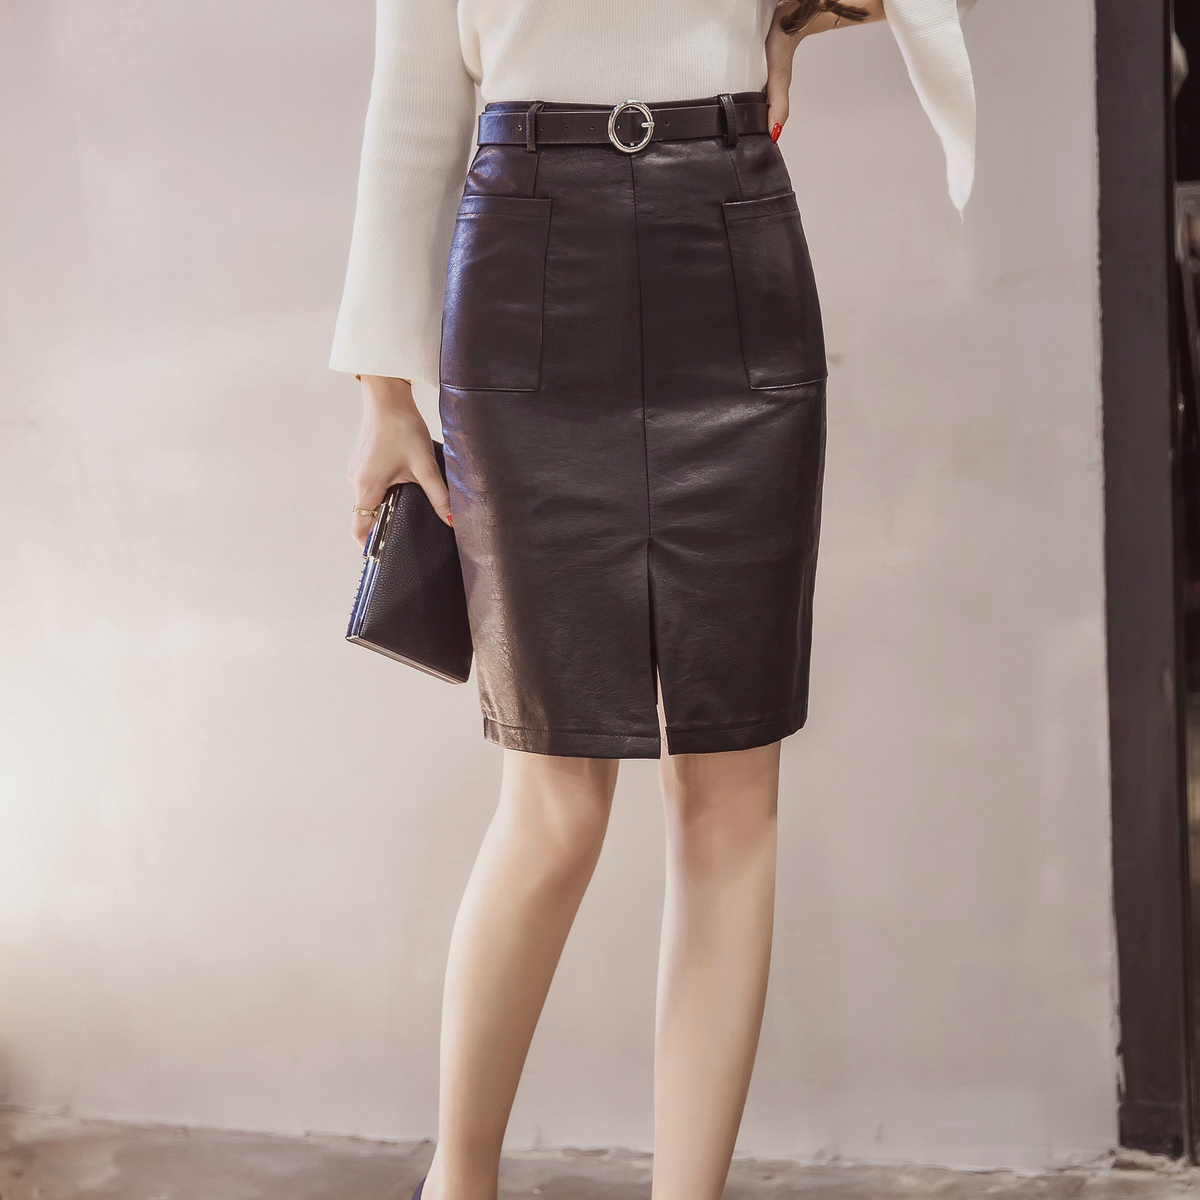 Compare Prices on Pencil Skirts for Tall Women- Online Shopping ...